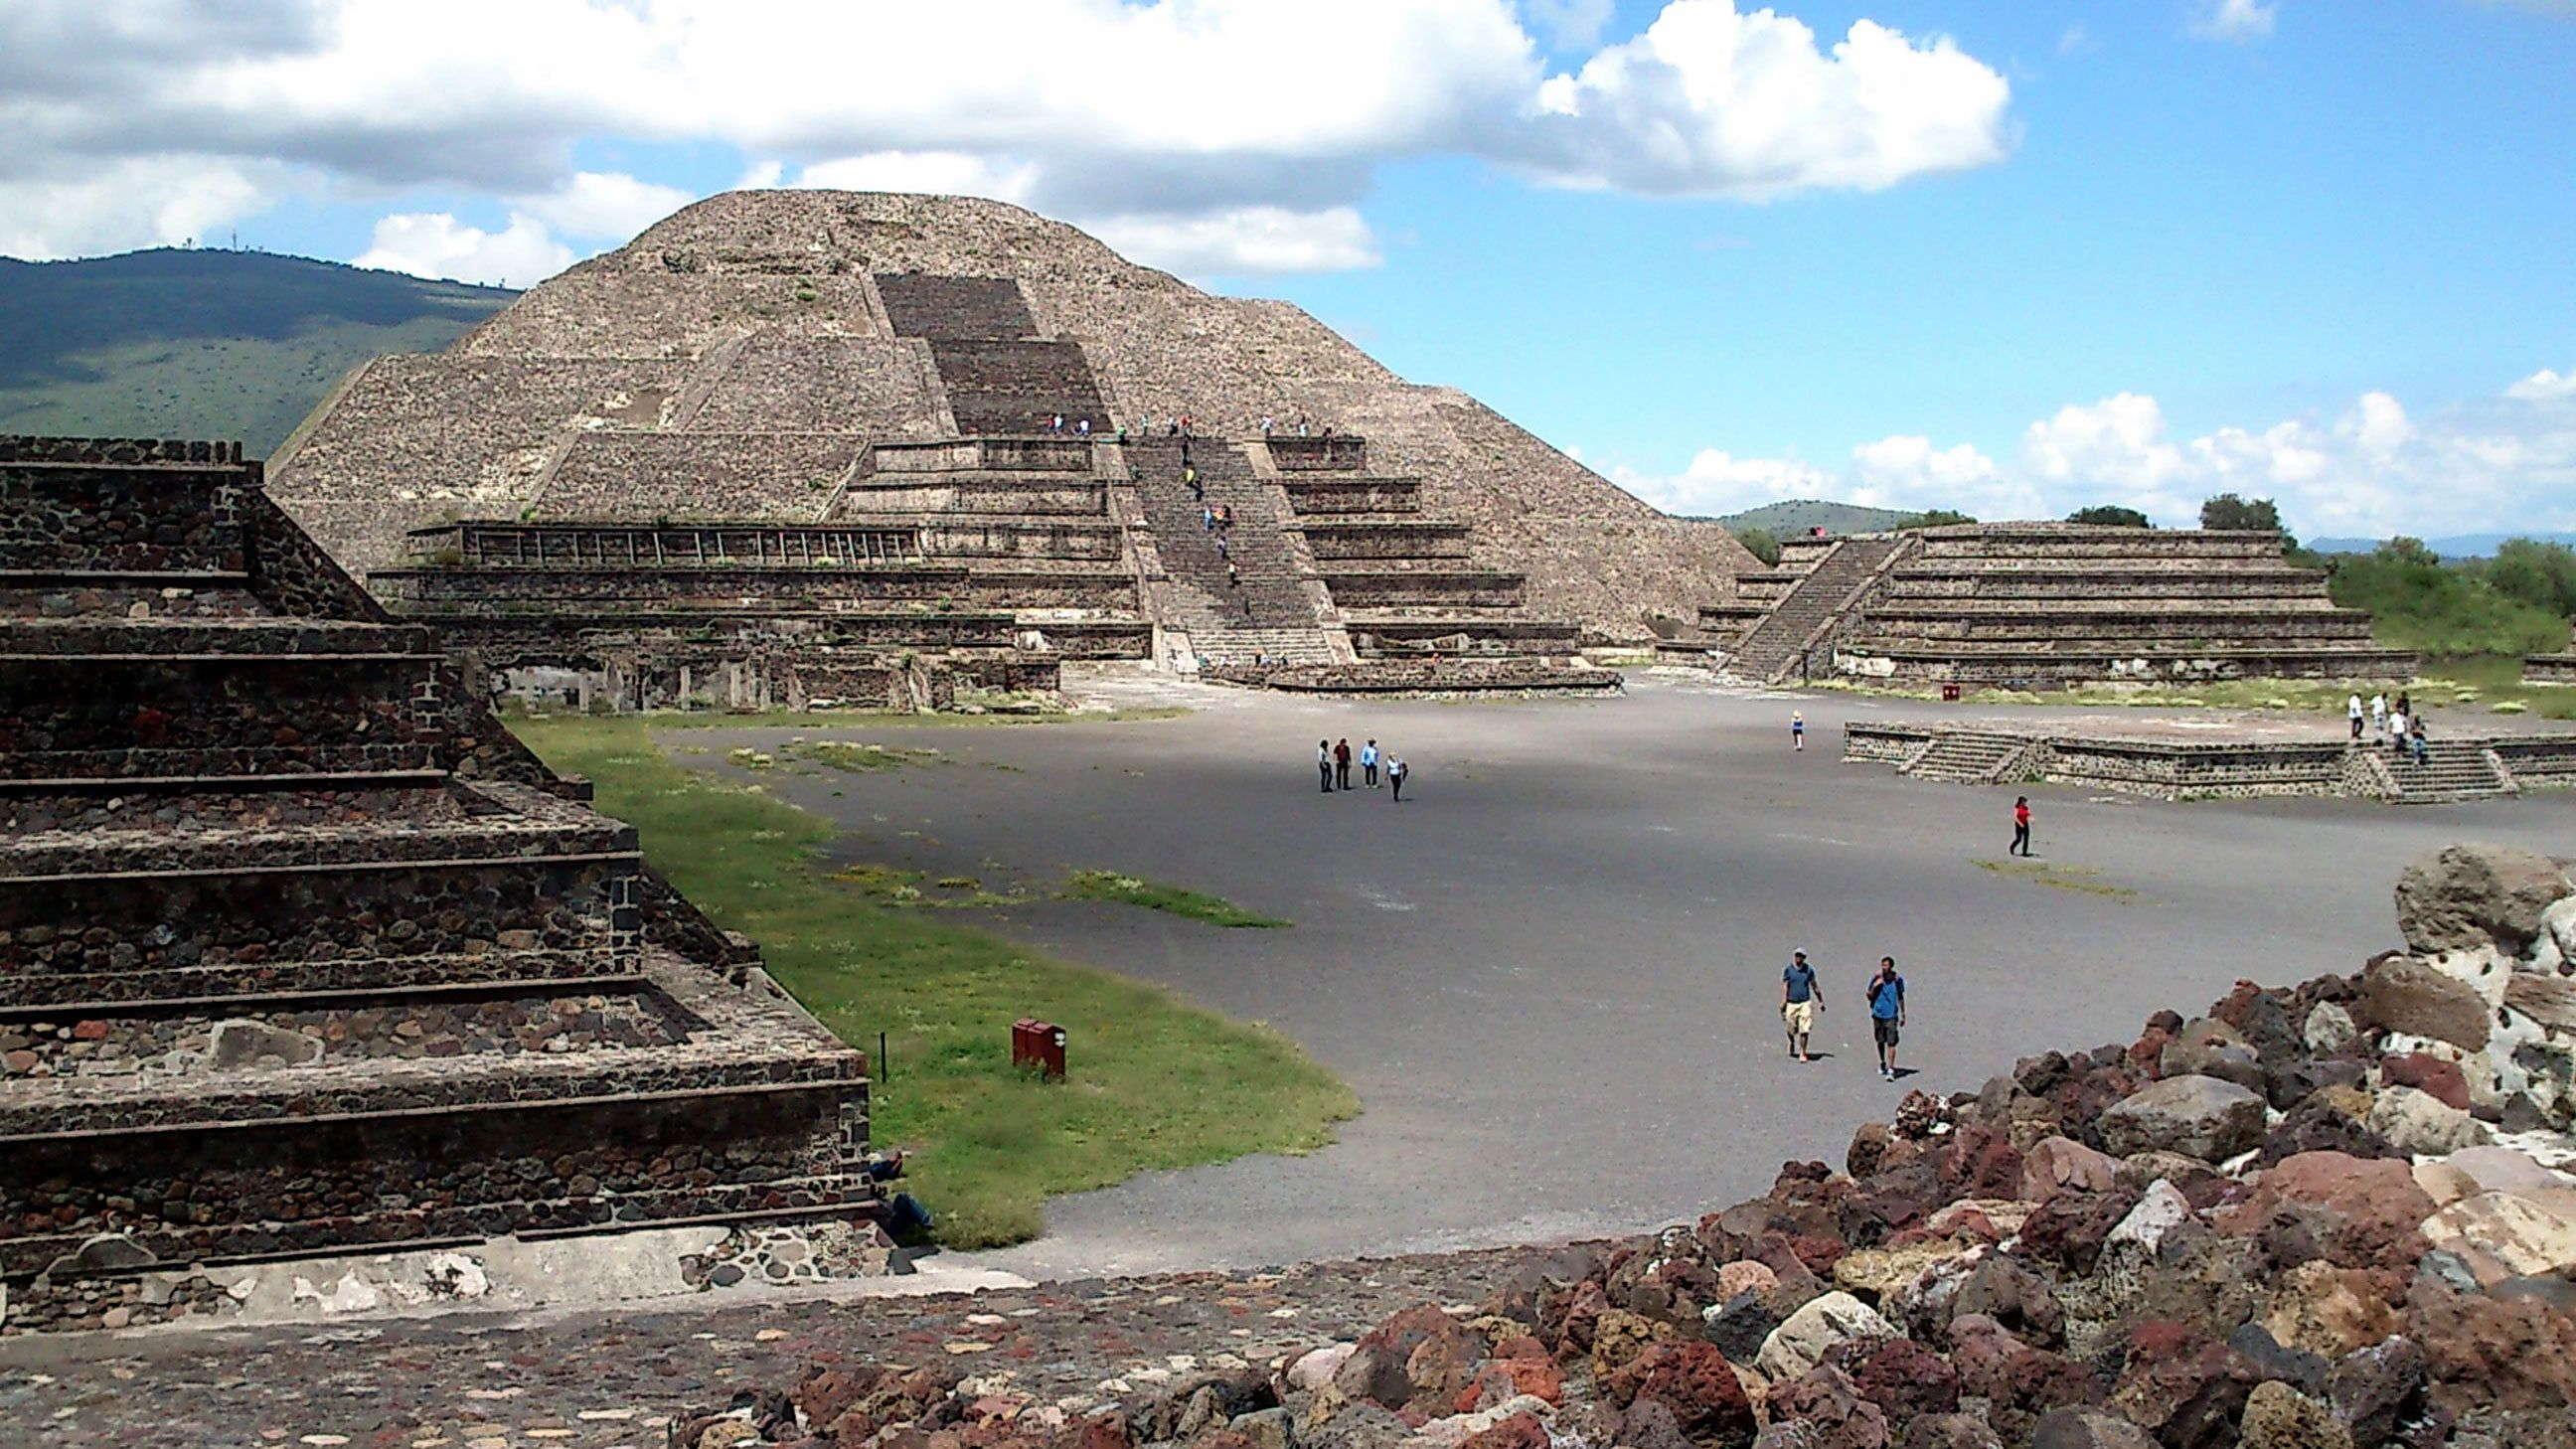 Teotihuacan pyramid on Your Own Self-Guided Tour